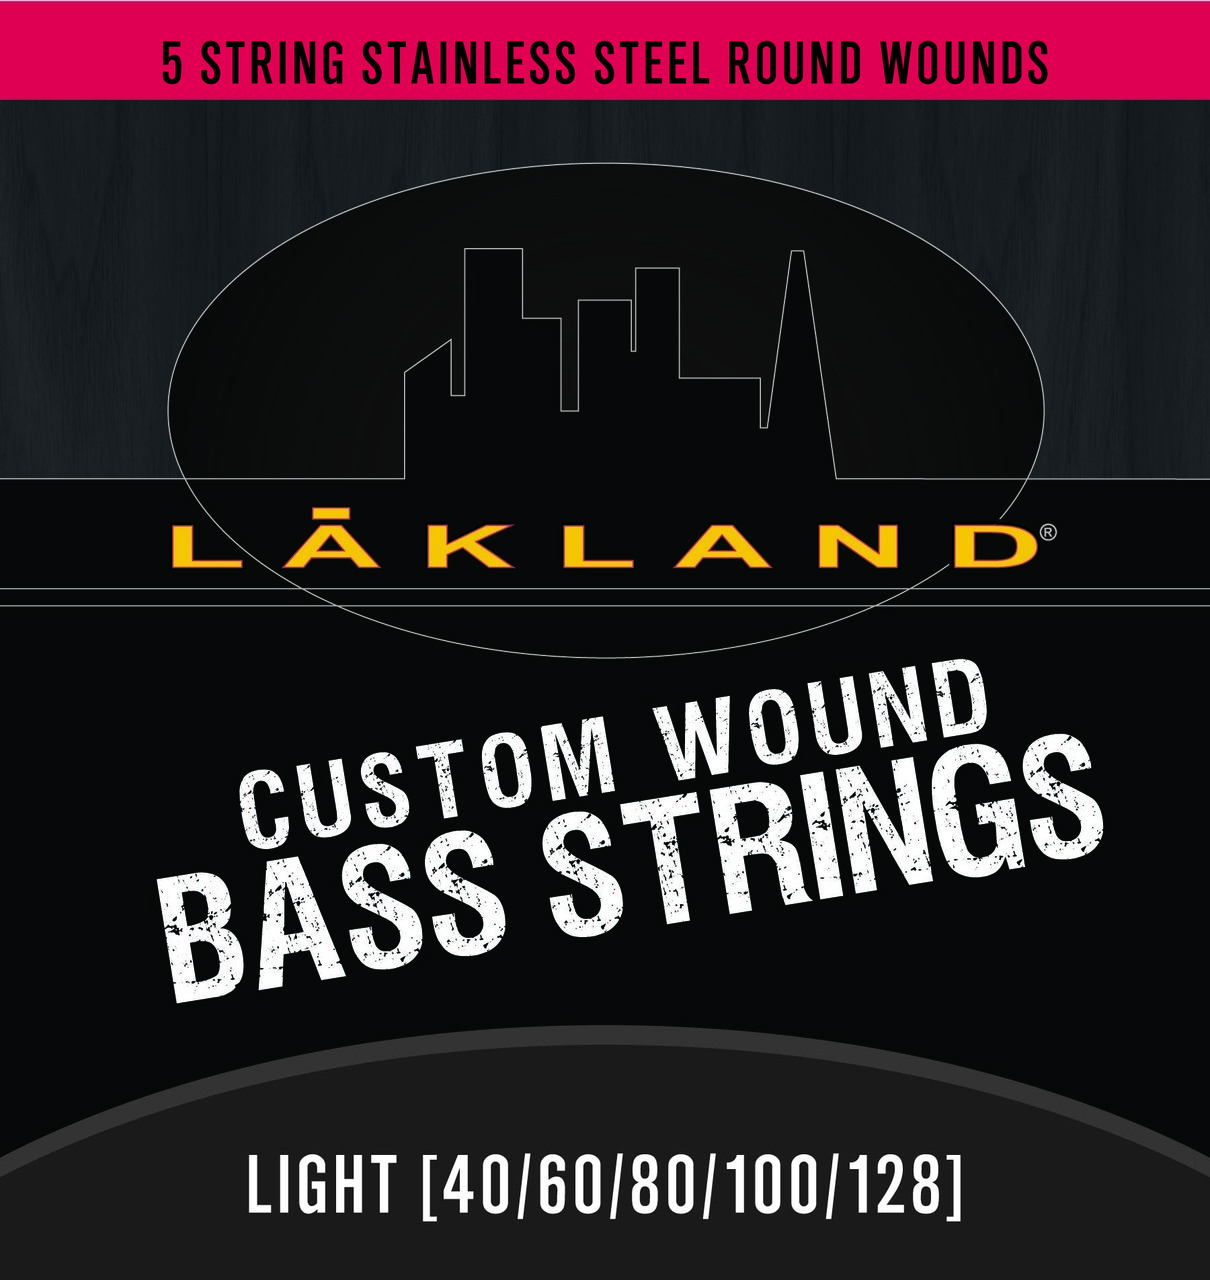 5 String Stainless Steel Round Wound Bass Strings Light Gauge